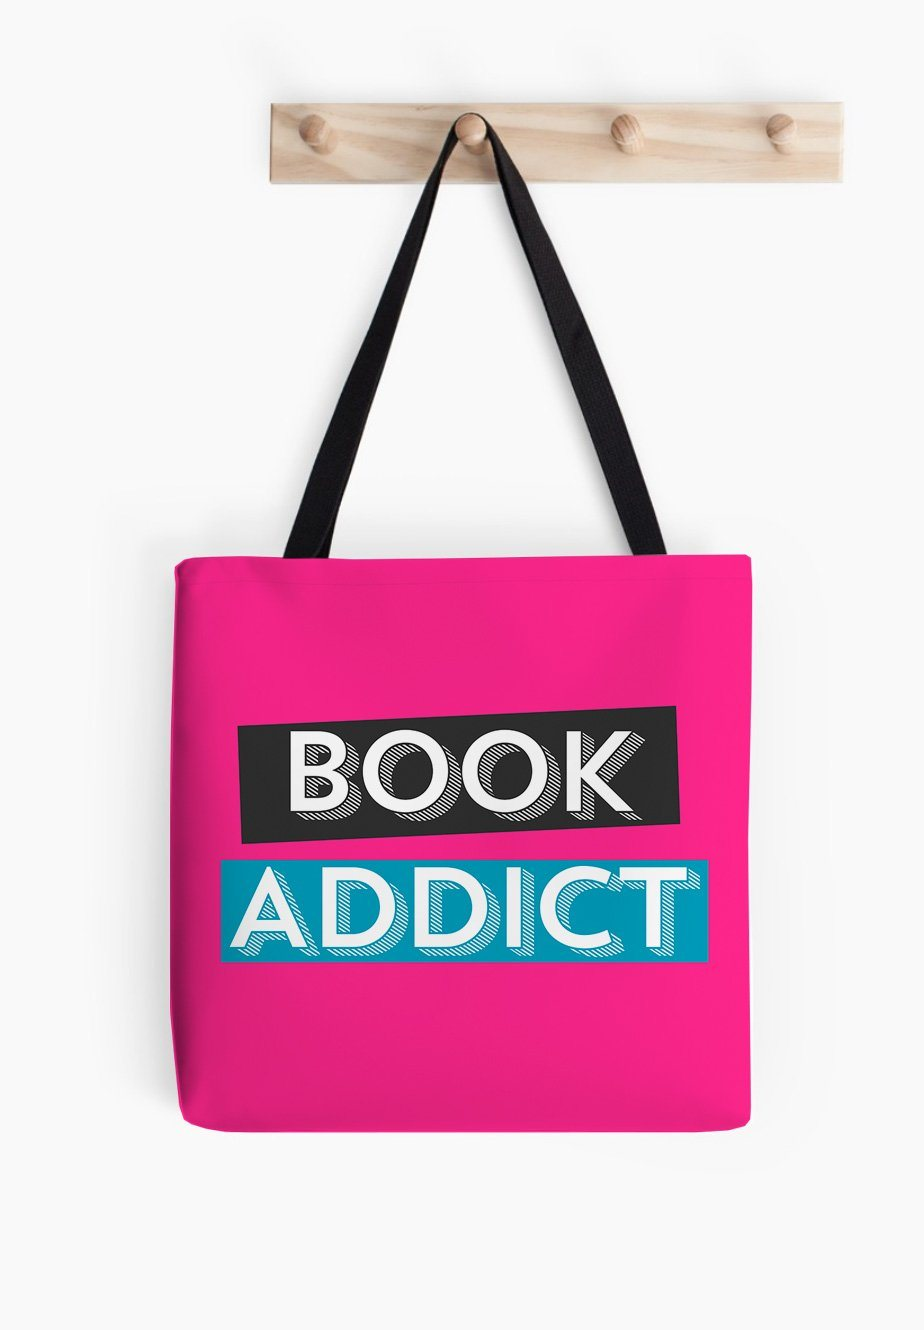 Book Addict Tote bag - Book Fan Gifts